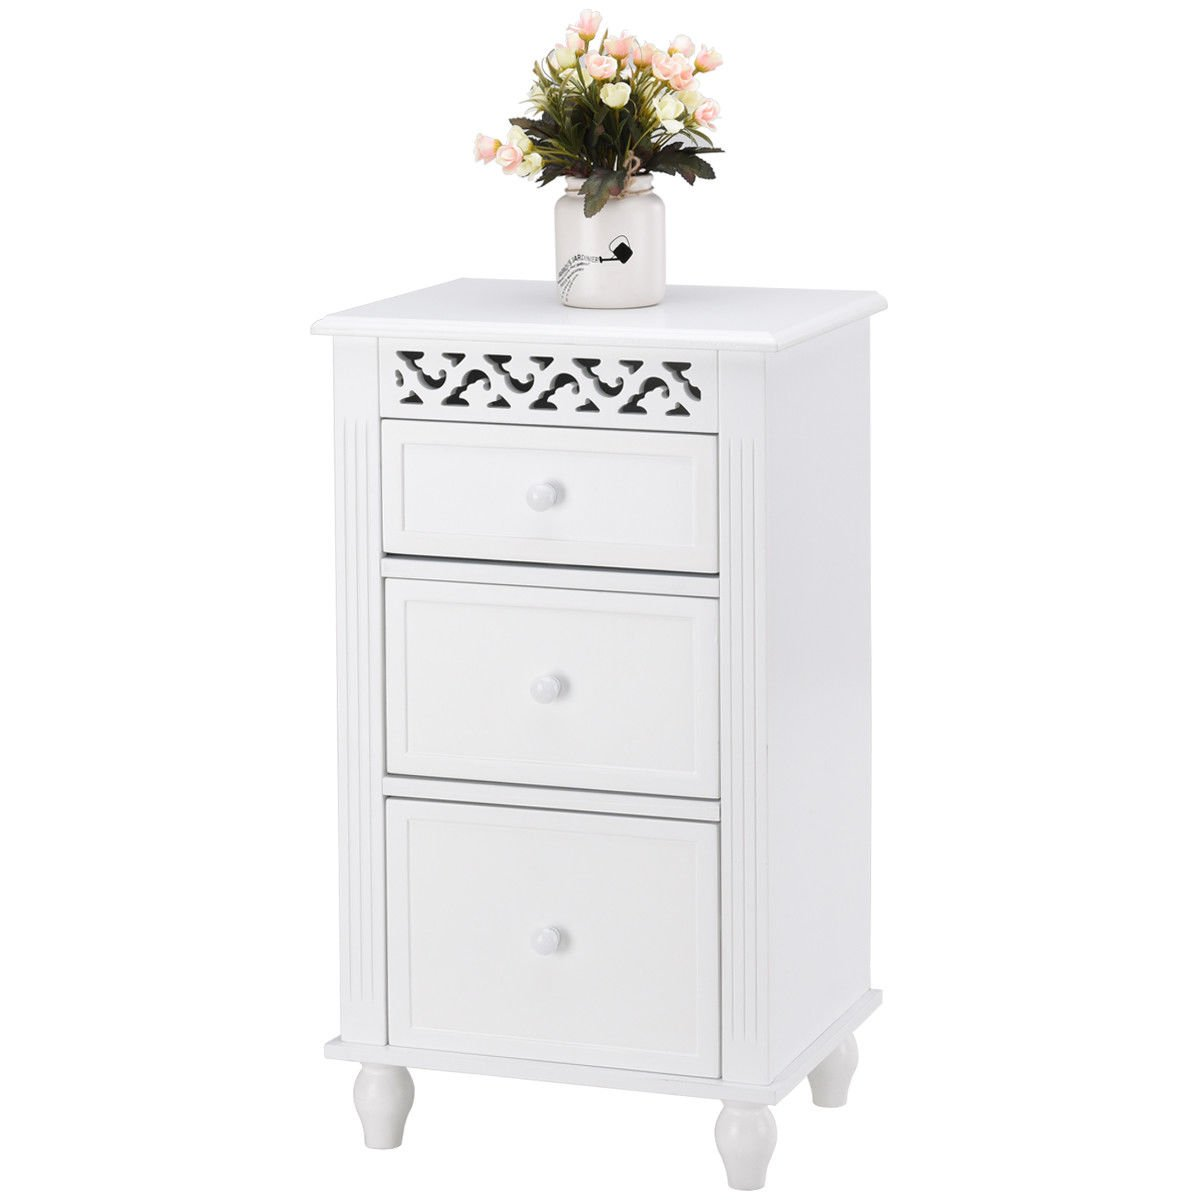 Giantex Storage Floor Cabinet W/One Cabinet Two-Layer Adjustable Shelves & One Drawer Wood Bathroom Cupboard Organizer Kitchen Collection Cabinet Shelf Nightstand Beside End Table White (2 Drawer)